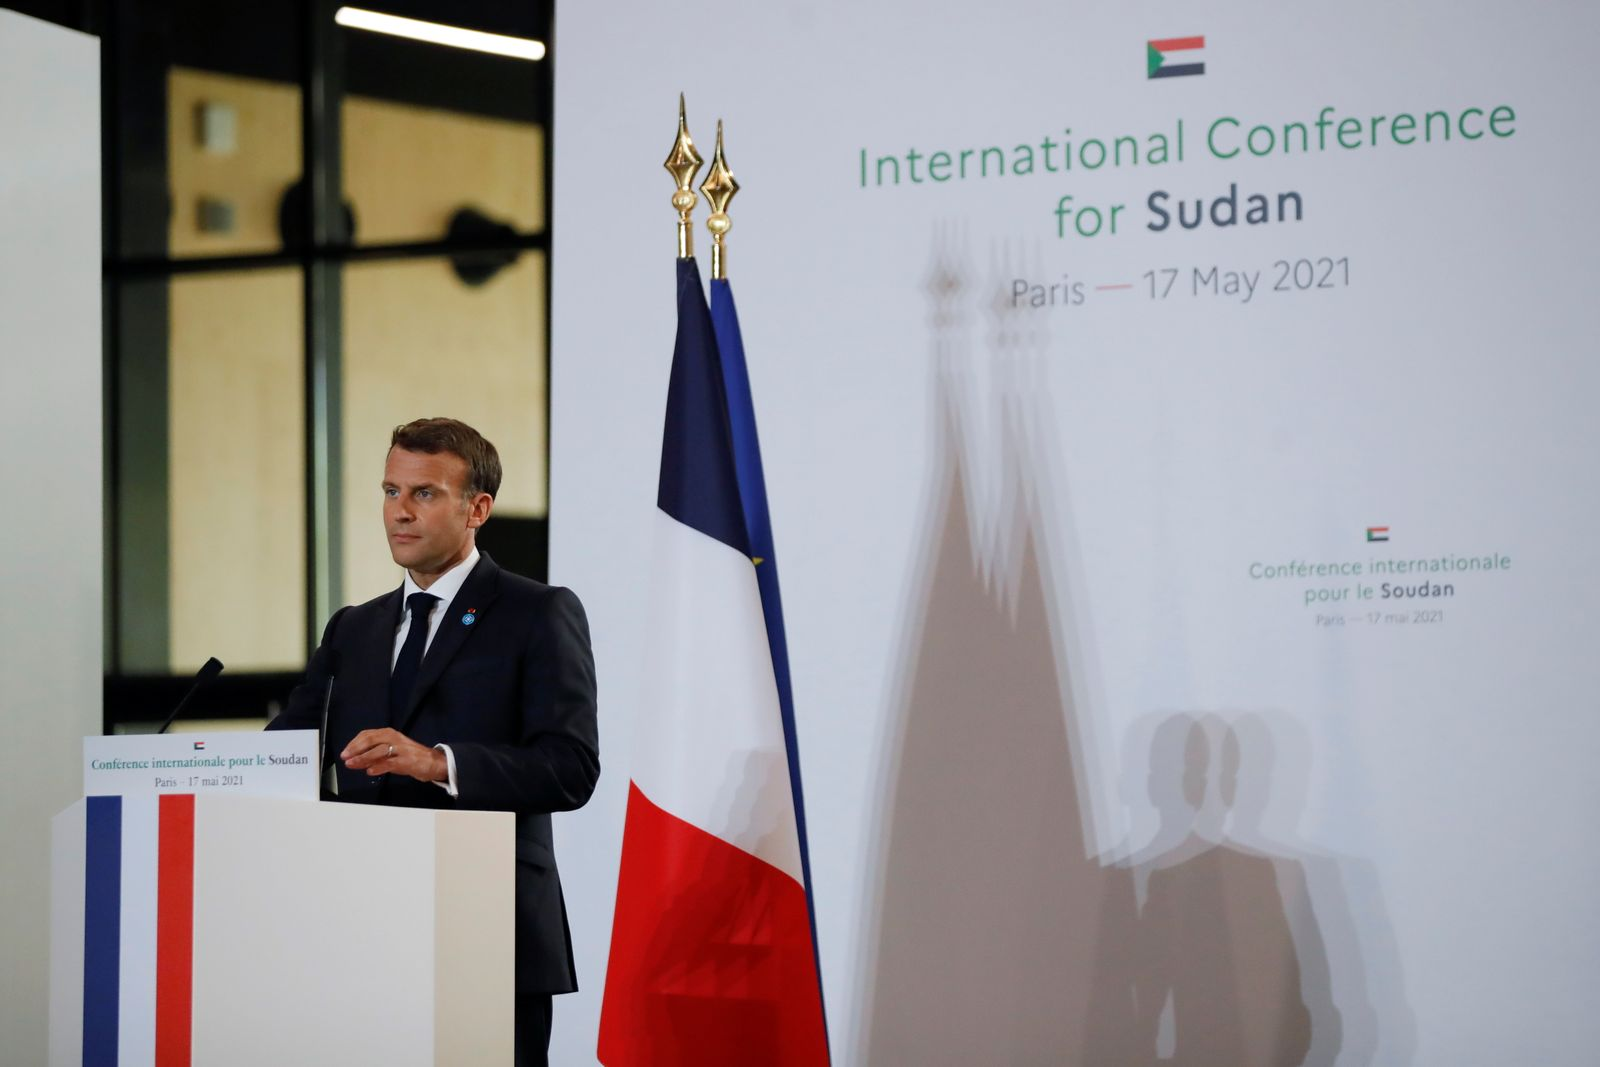 International Conference in support of Sudan in Paris